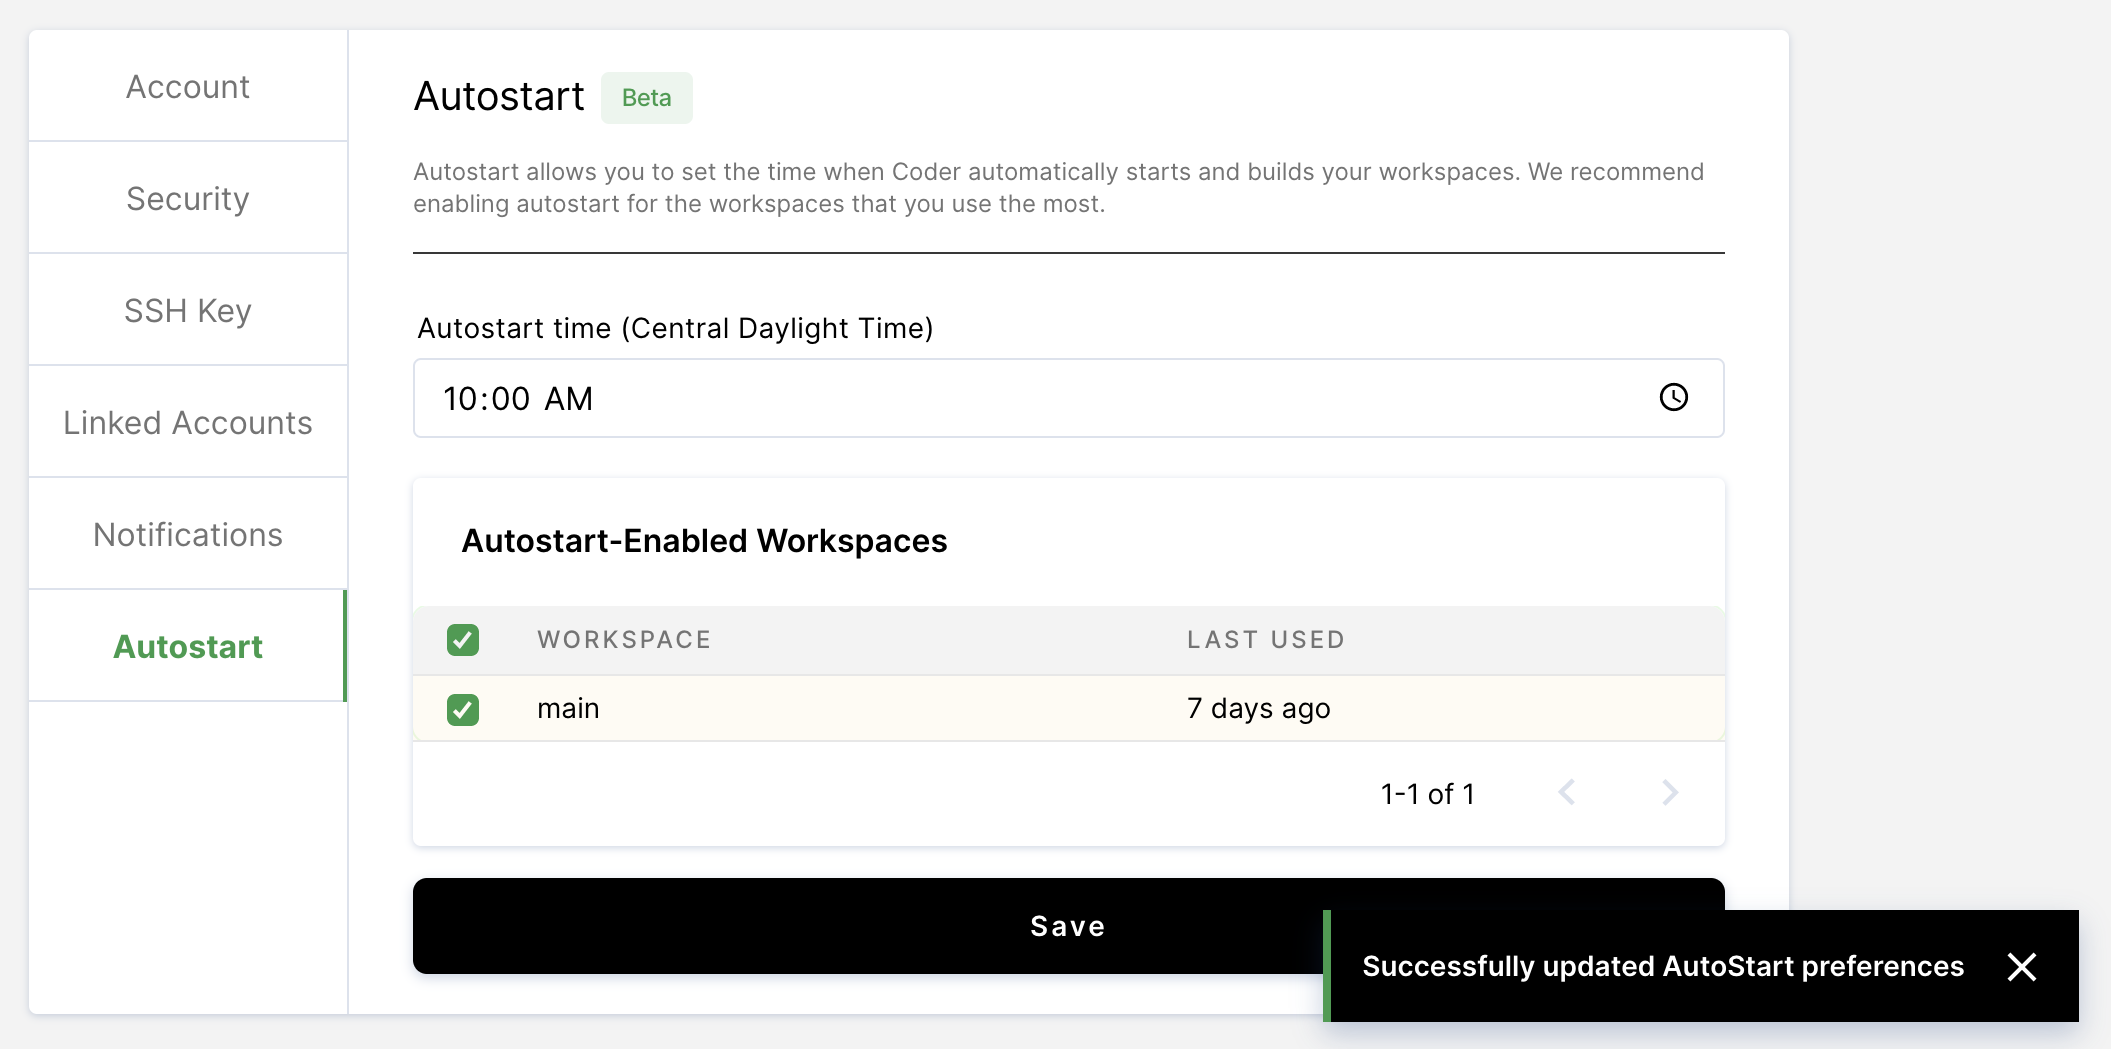 Select workspaces to autostart